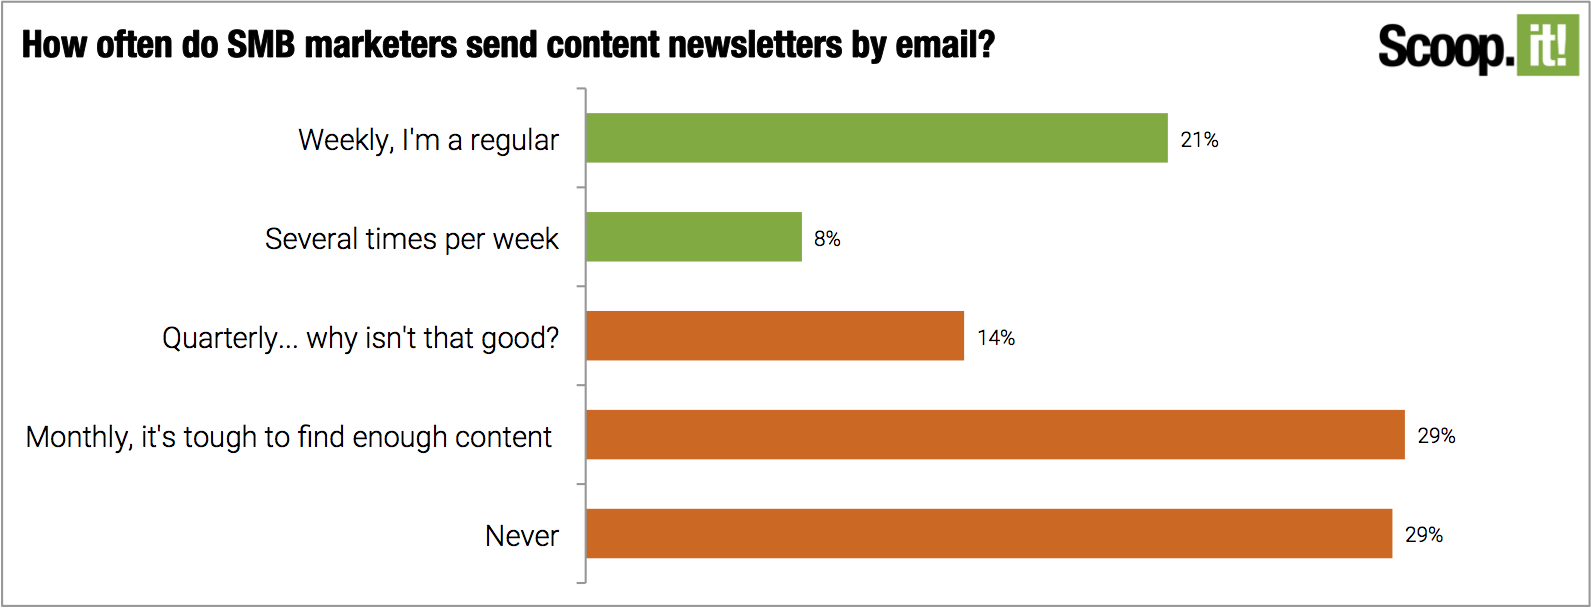 How-often-do-SMB-marketers-send-content-newsletters-by-email